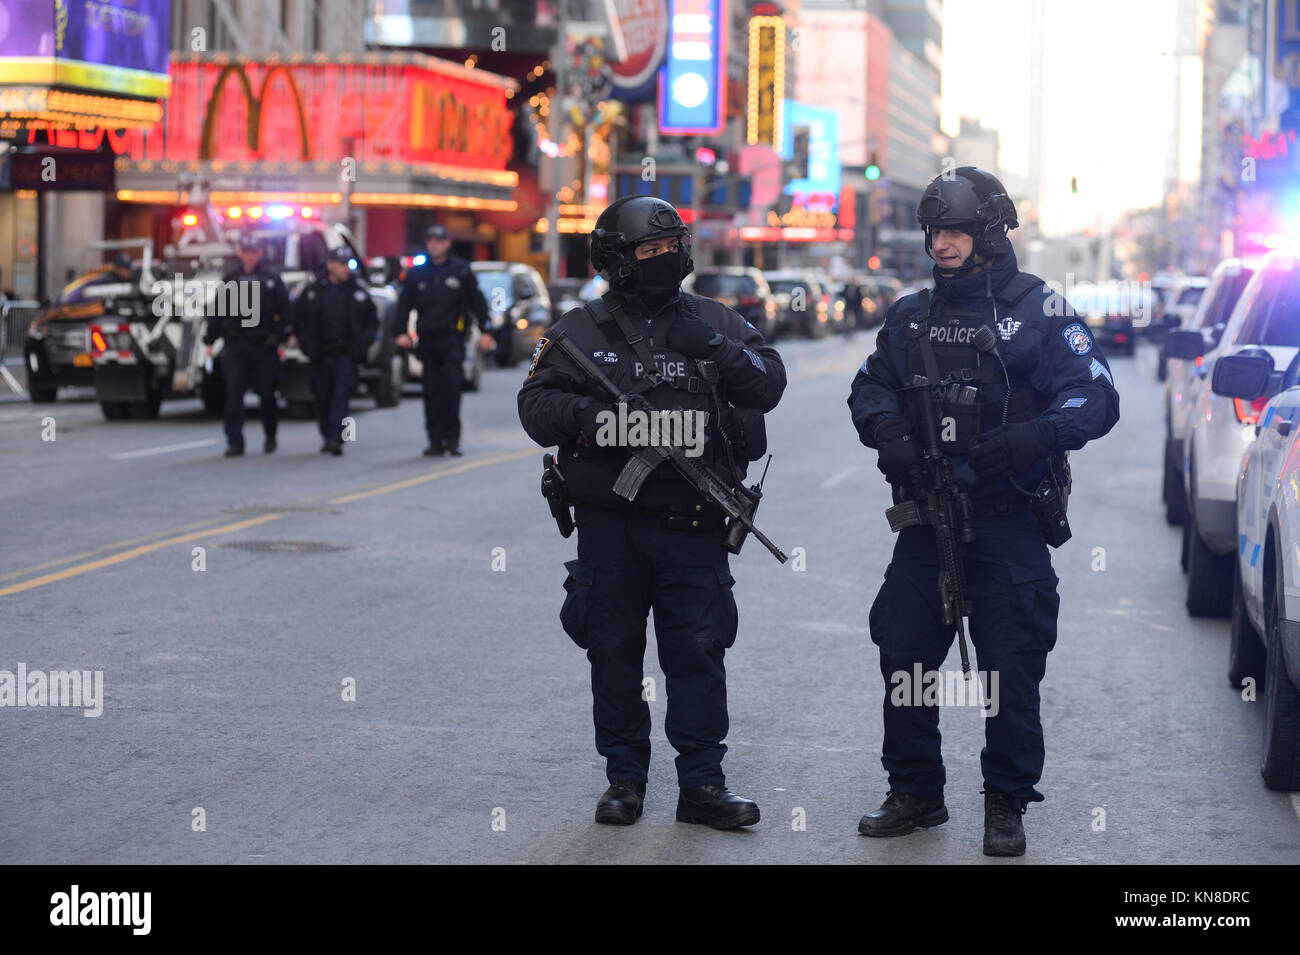 New York, USA. 11th December, 2017. Law enforcement outside the Port Authority Bus Terminal after reports of an Stock Photo